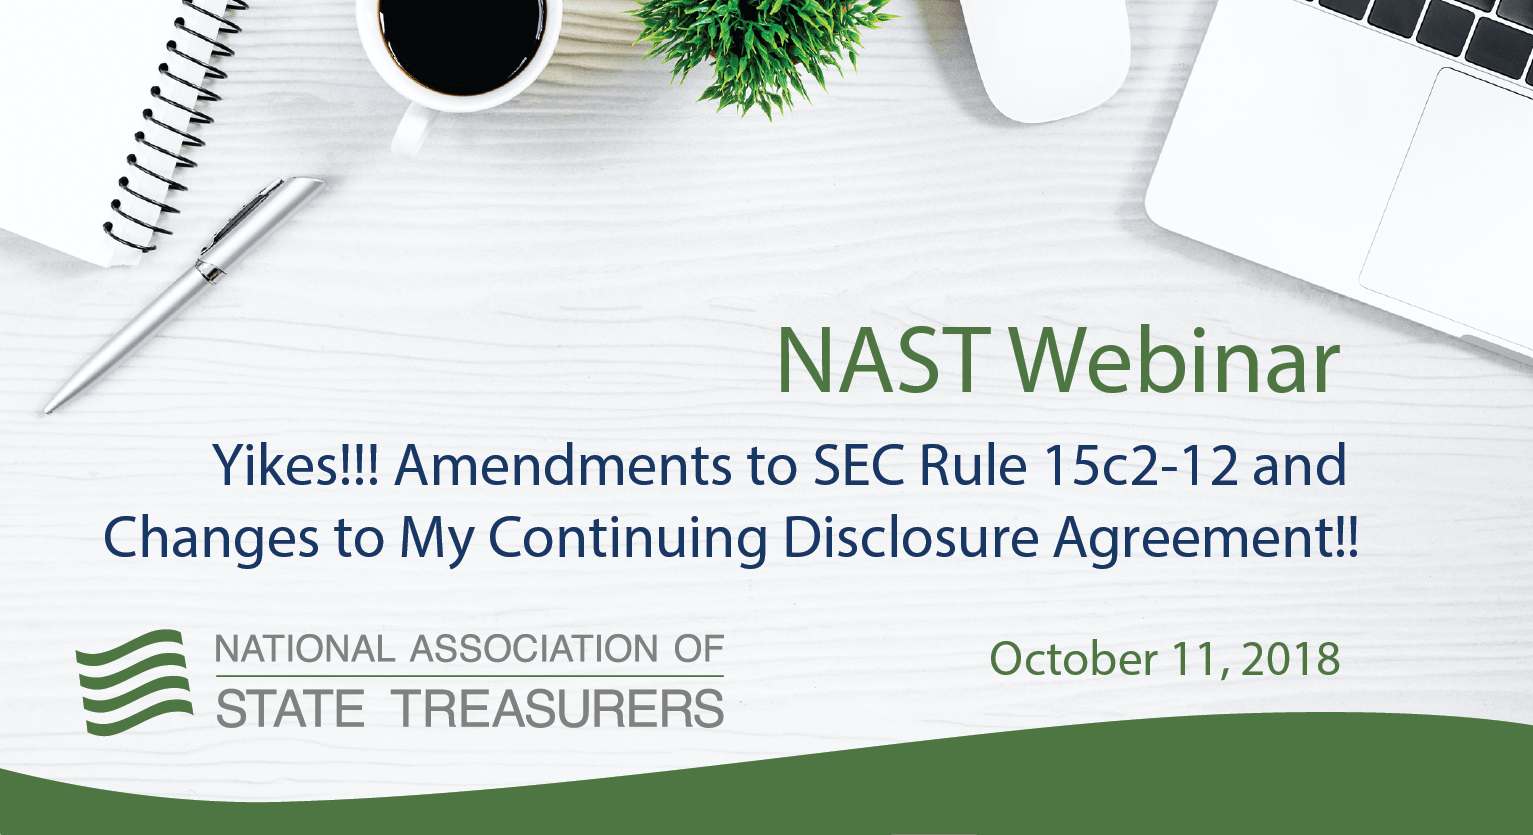 Yikes!!! Amendments to SEC Rule 15c2-12 and Changes to My Continuing Disclosure Agreement!!